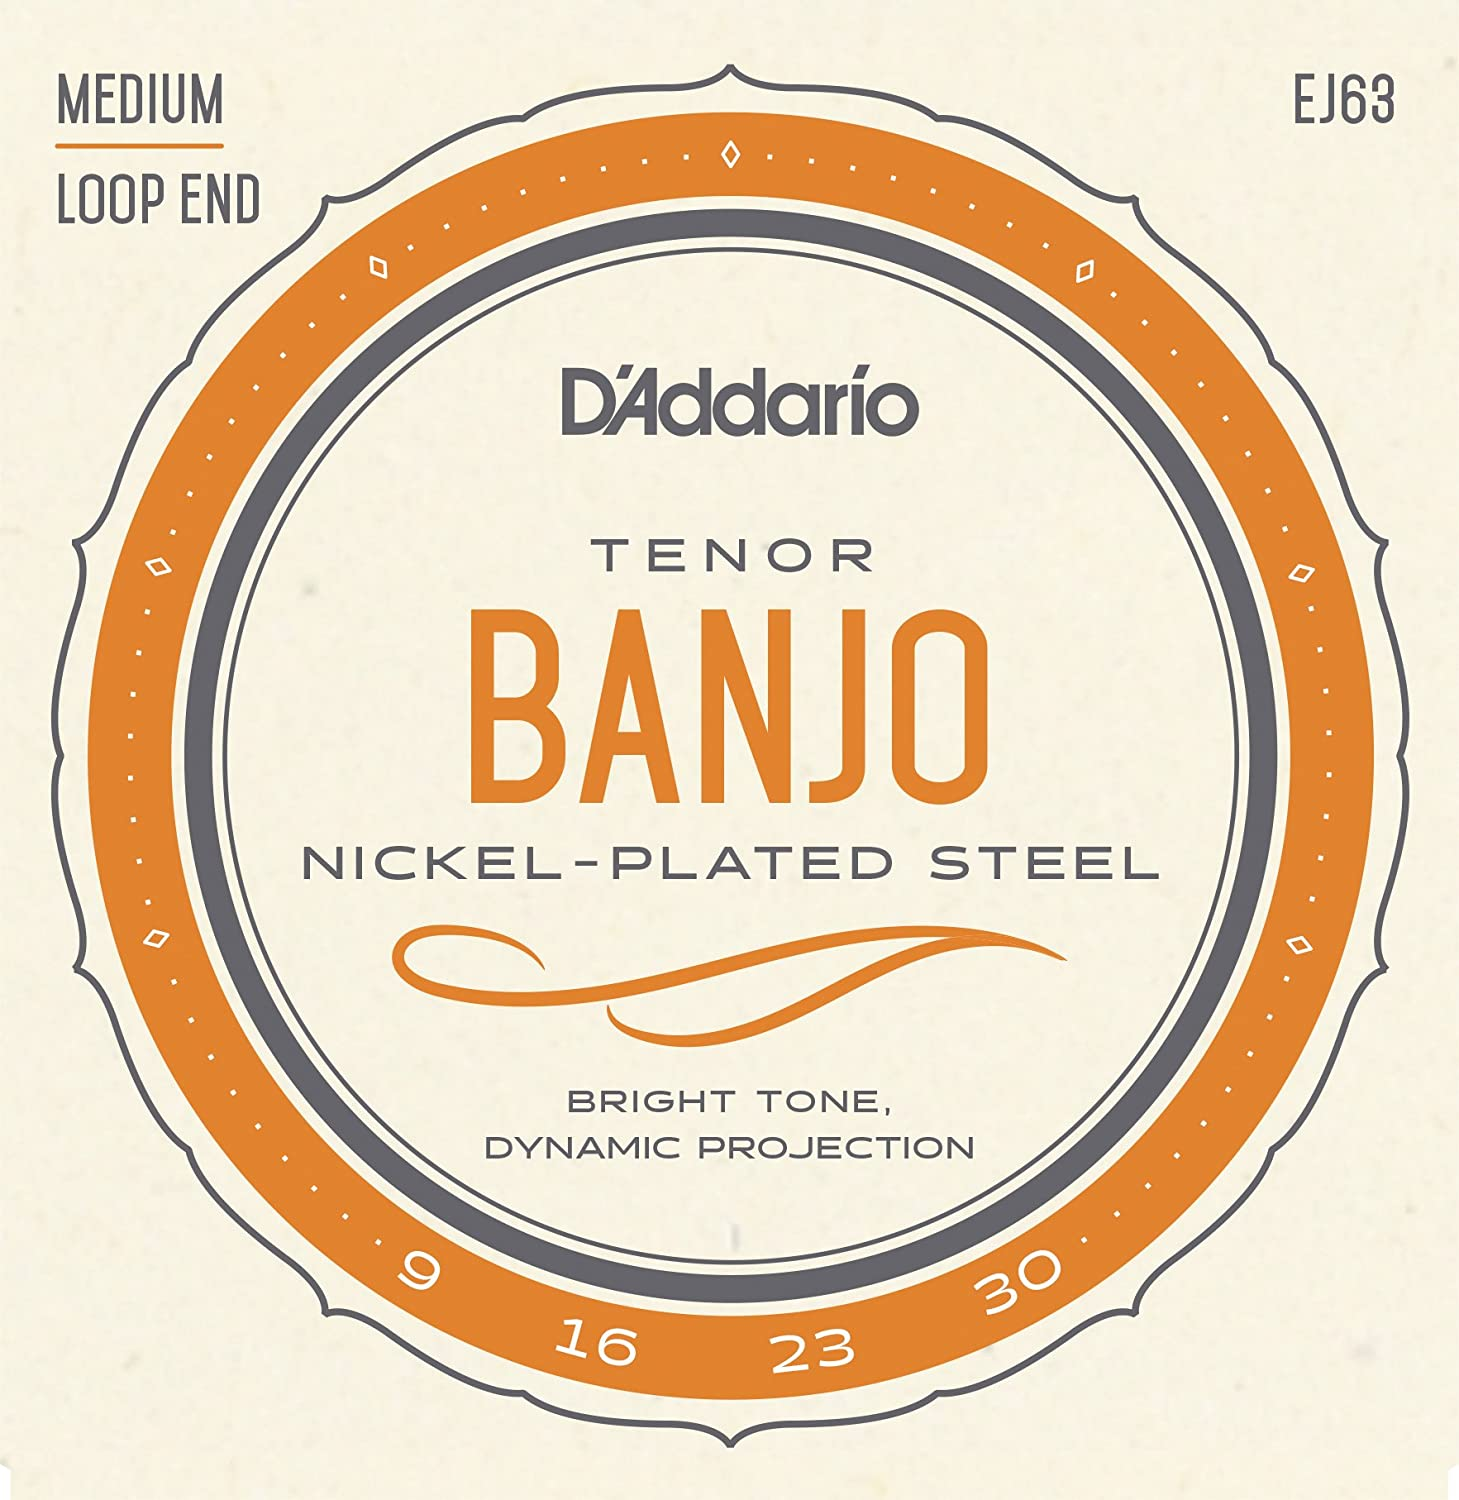 D'Addario EJ63 Nickel Tenor Banjo Strings, 9-30 D' Addario